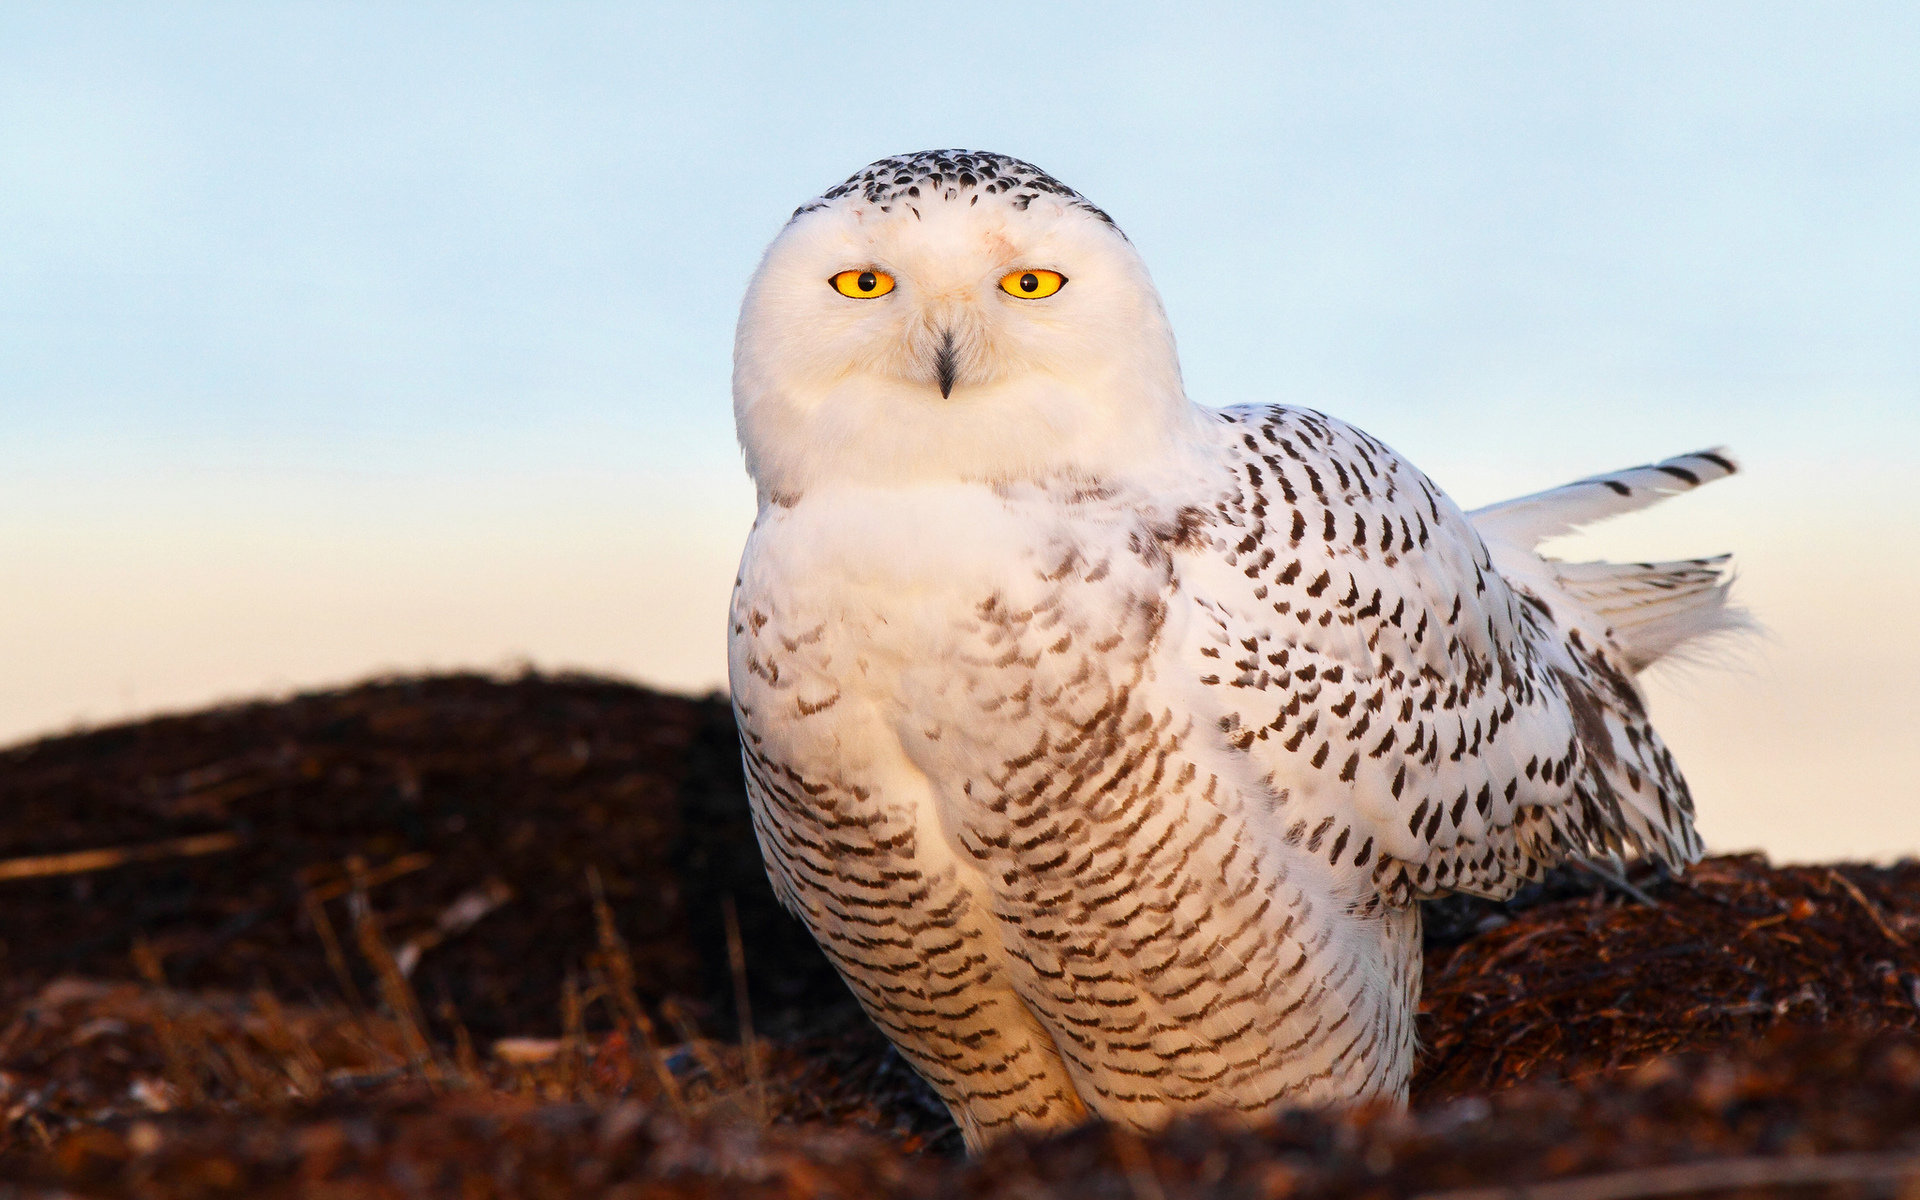 Download hd 1920x1200 Snowy Owl desktop background ID:26833 for free